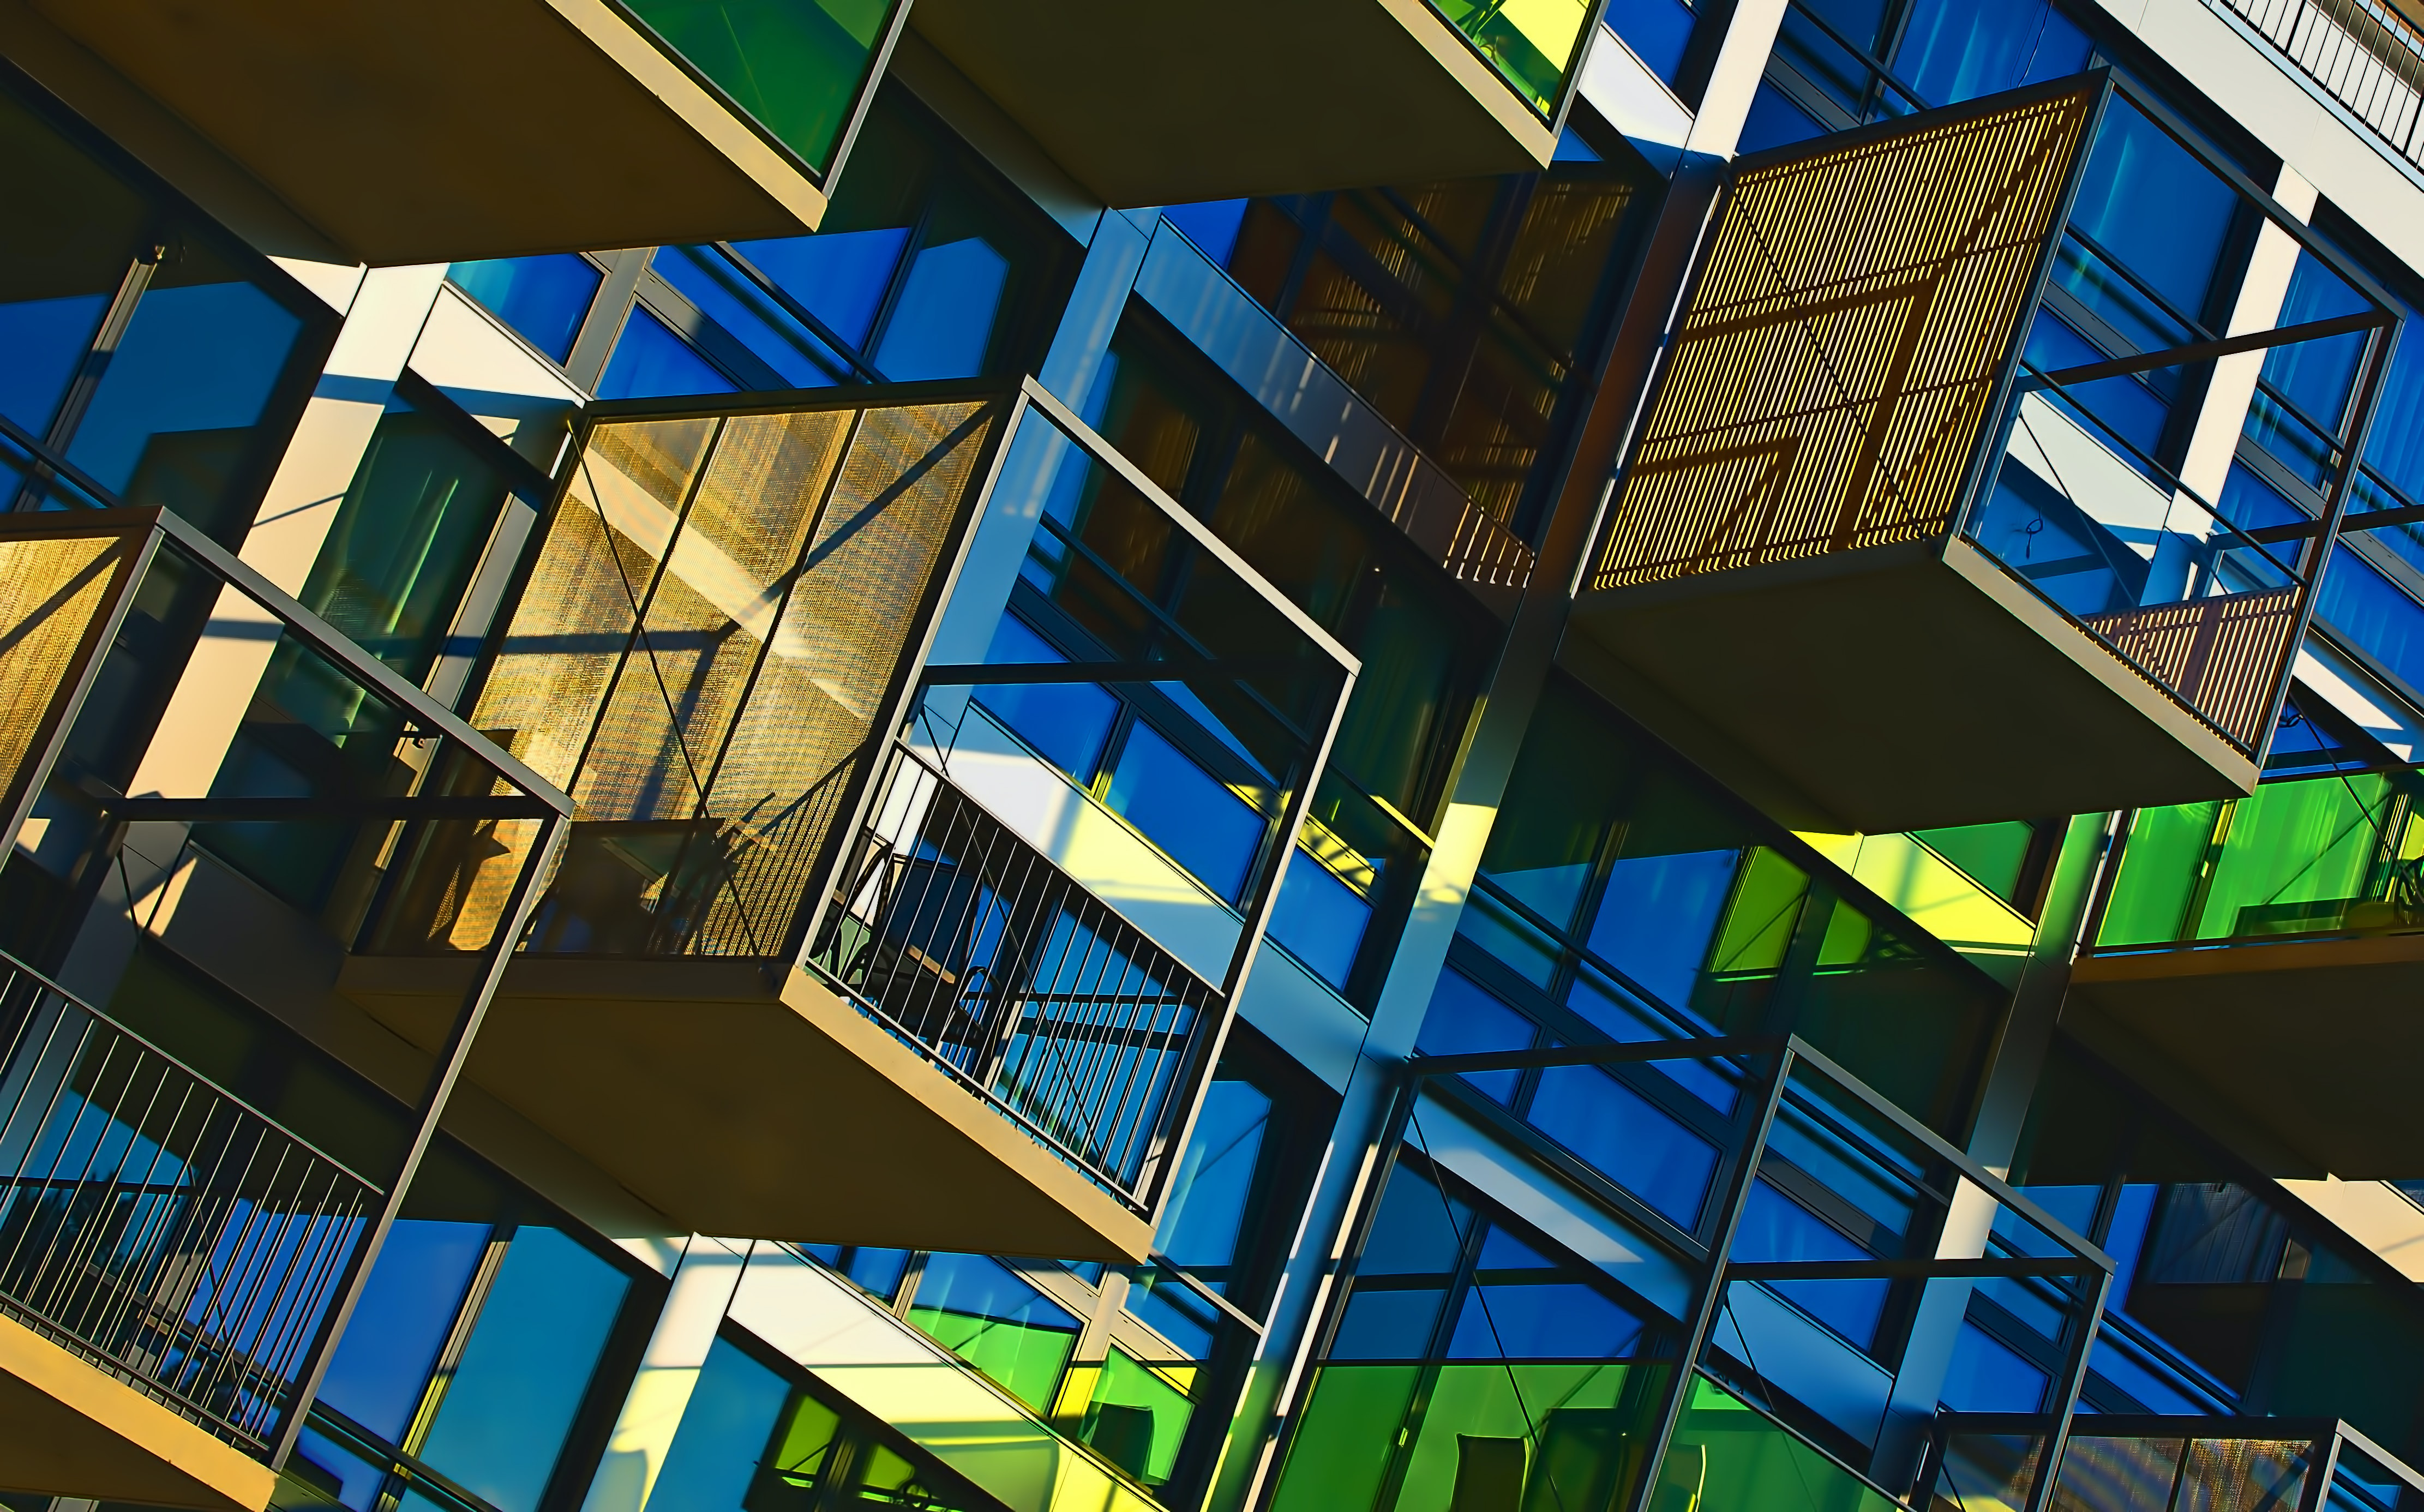 A modern apartment with green and blue windows and extended balconies as seen in Zürich.